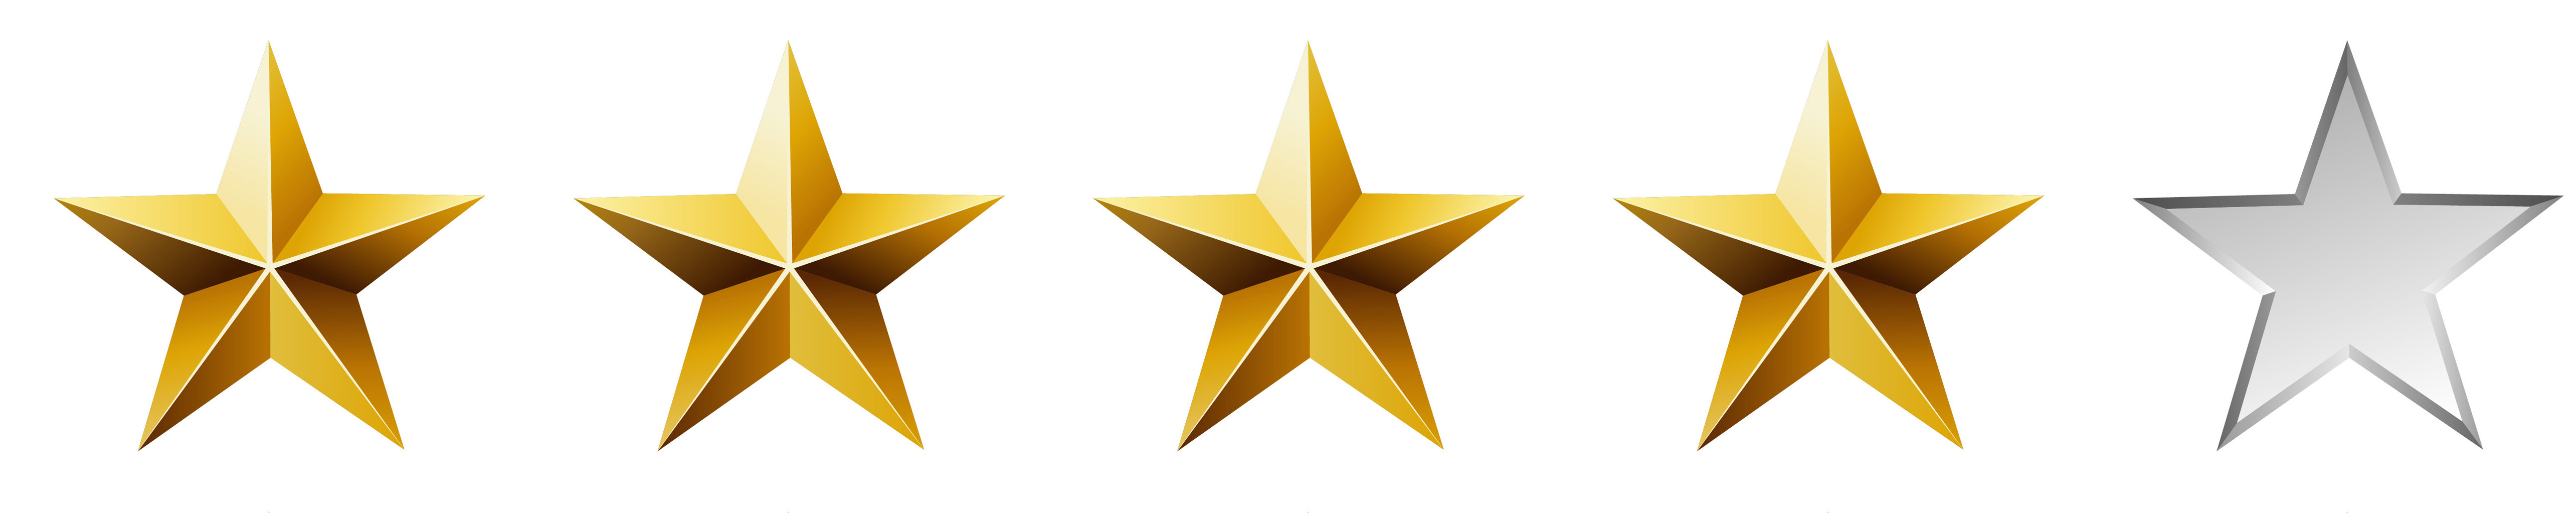 Image result for four star